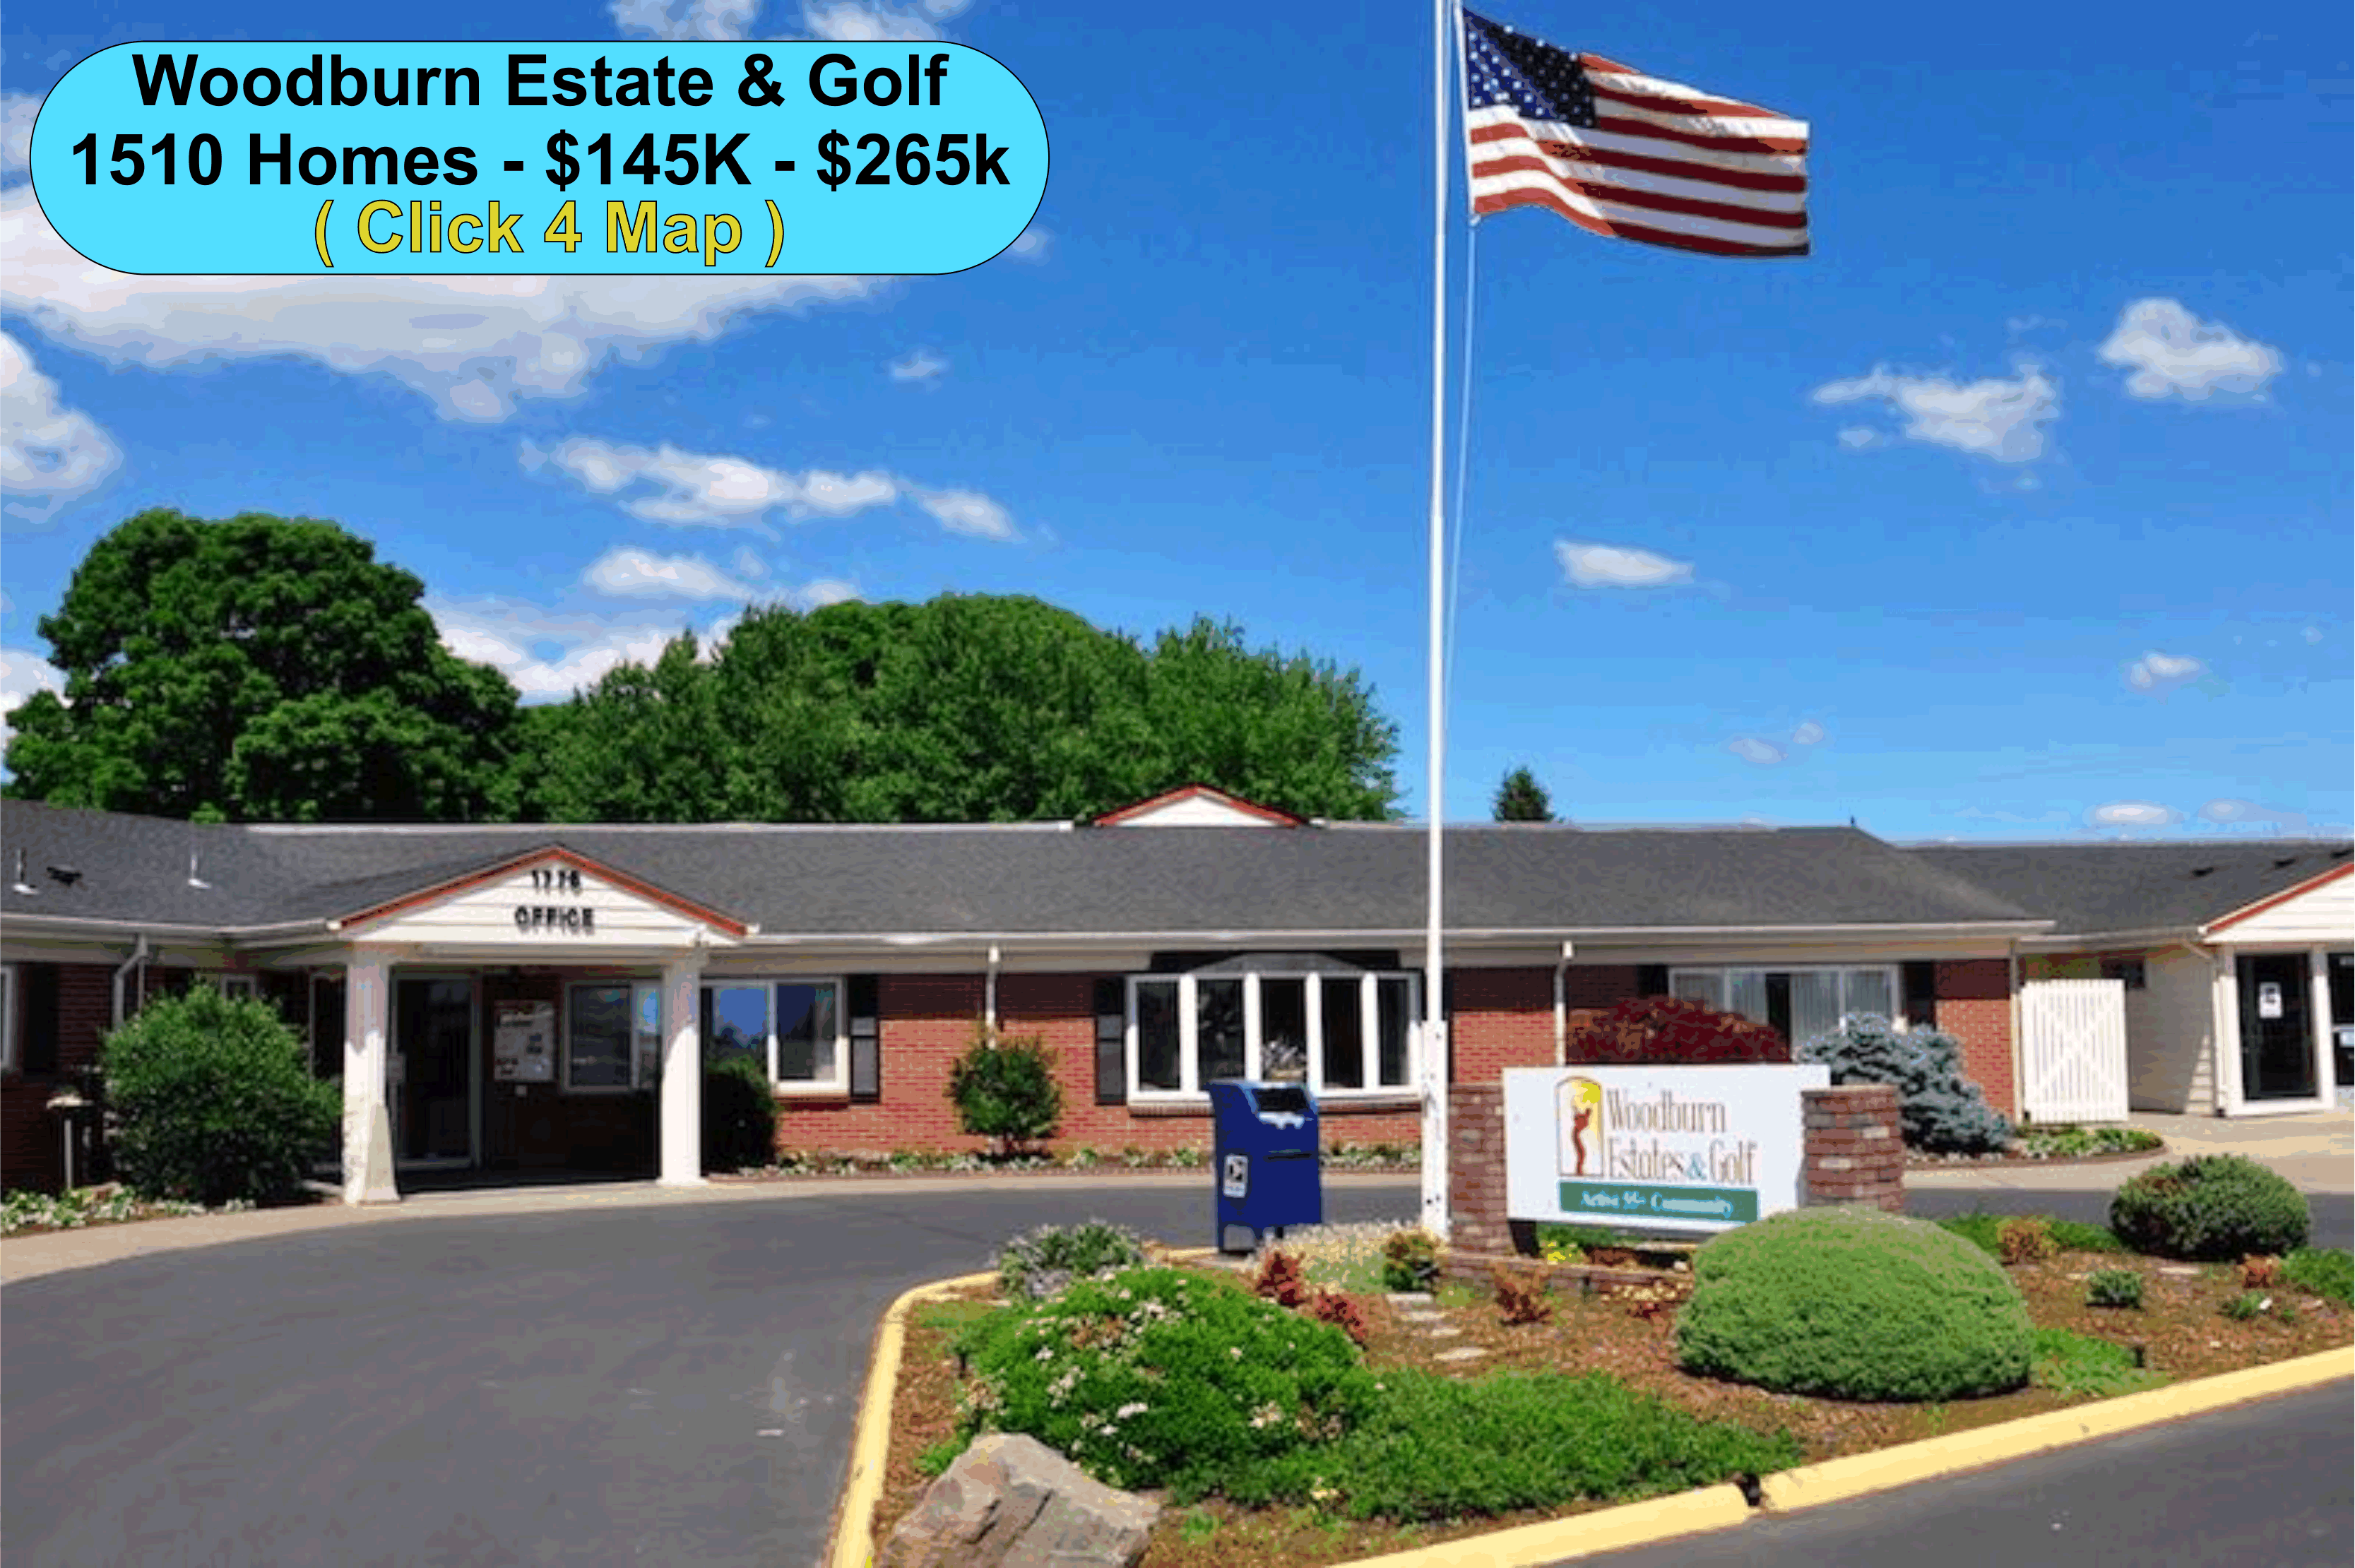 +55 Woodburn Estate & Golf